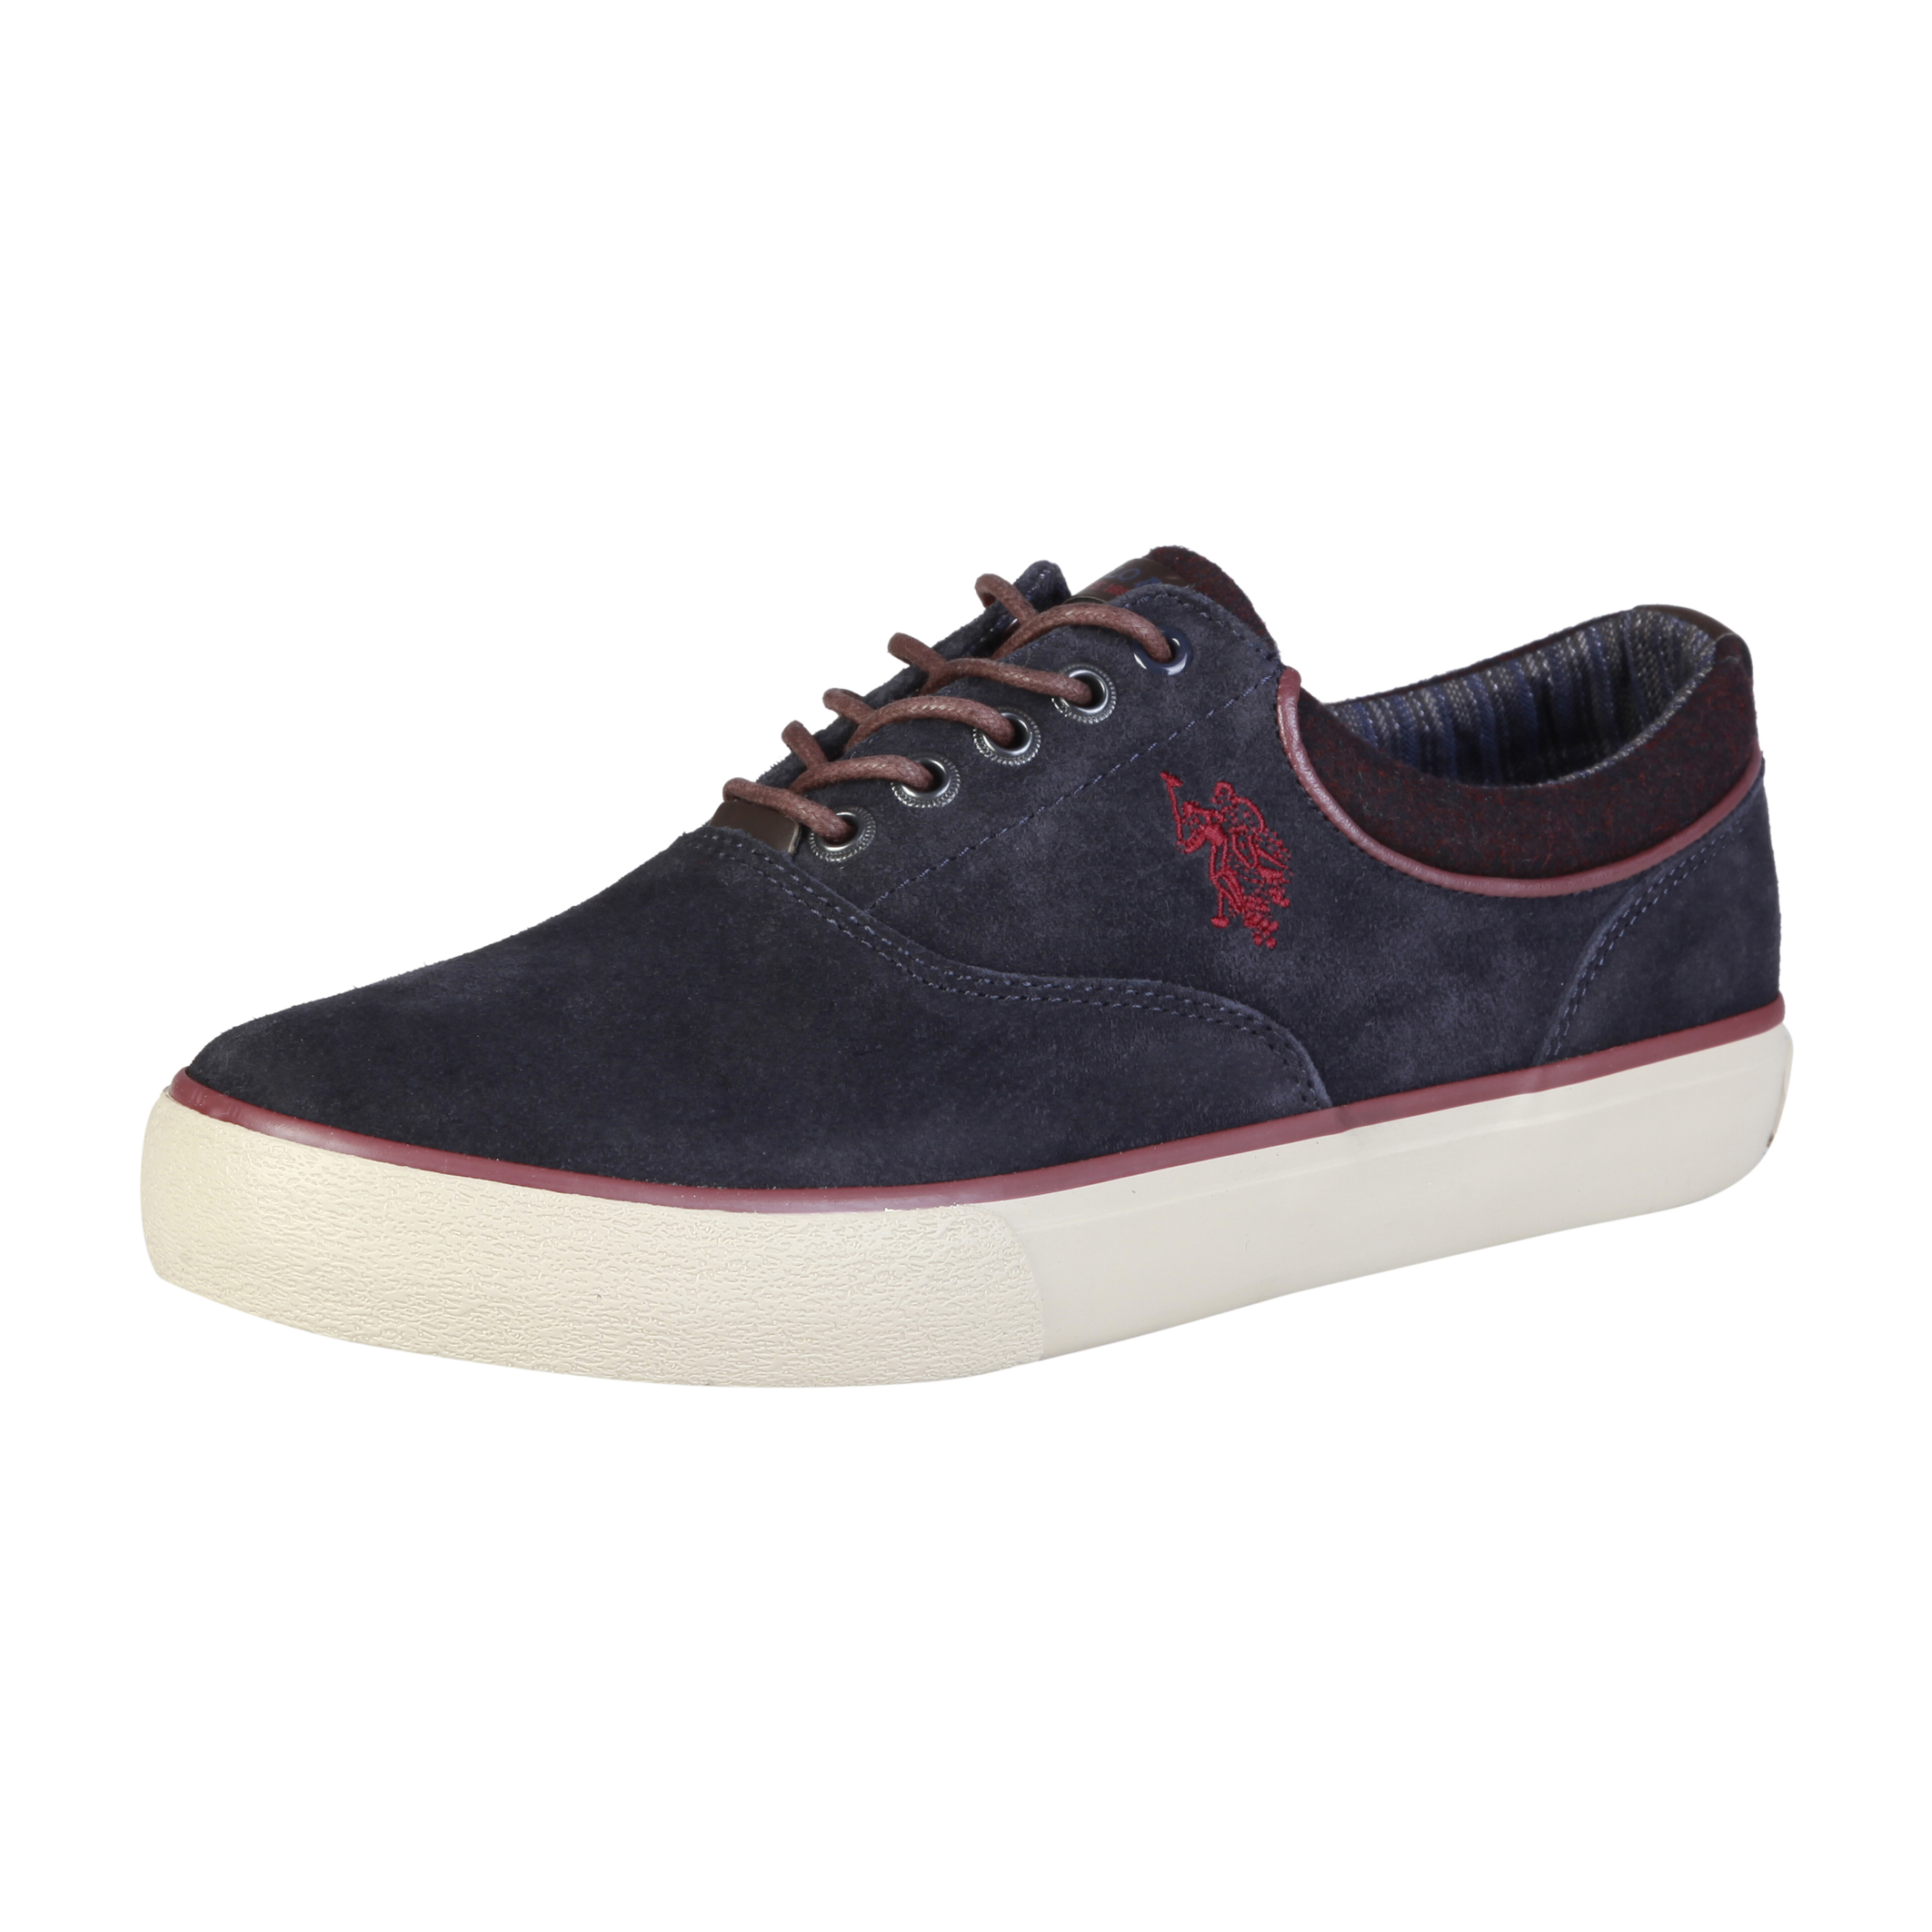 Chaussures U.S. Polo GALAN4204W7, Baskets Homme Homme Baskets Bleu/Brun Automne/Hiver 0c668b